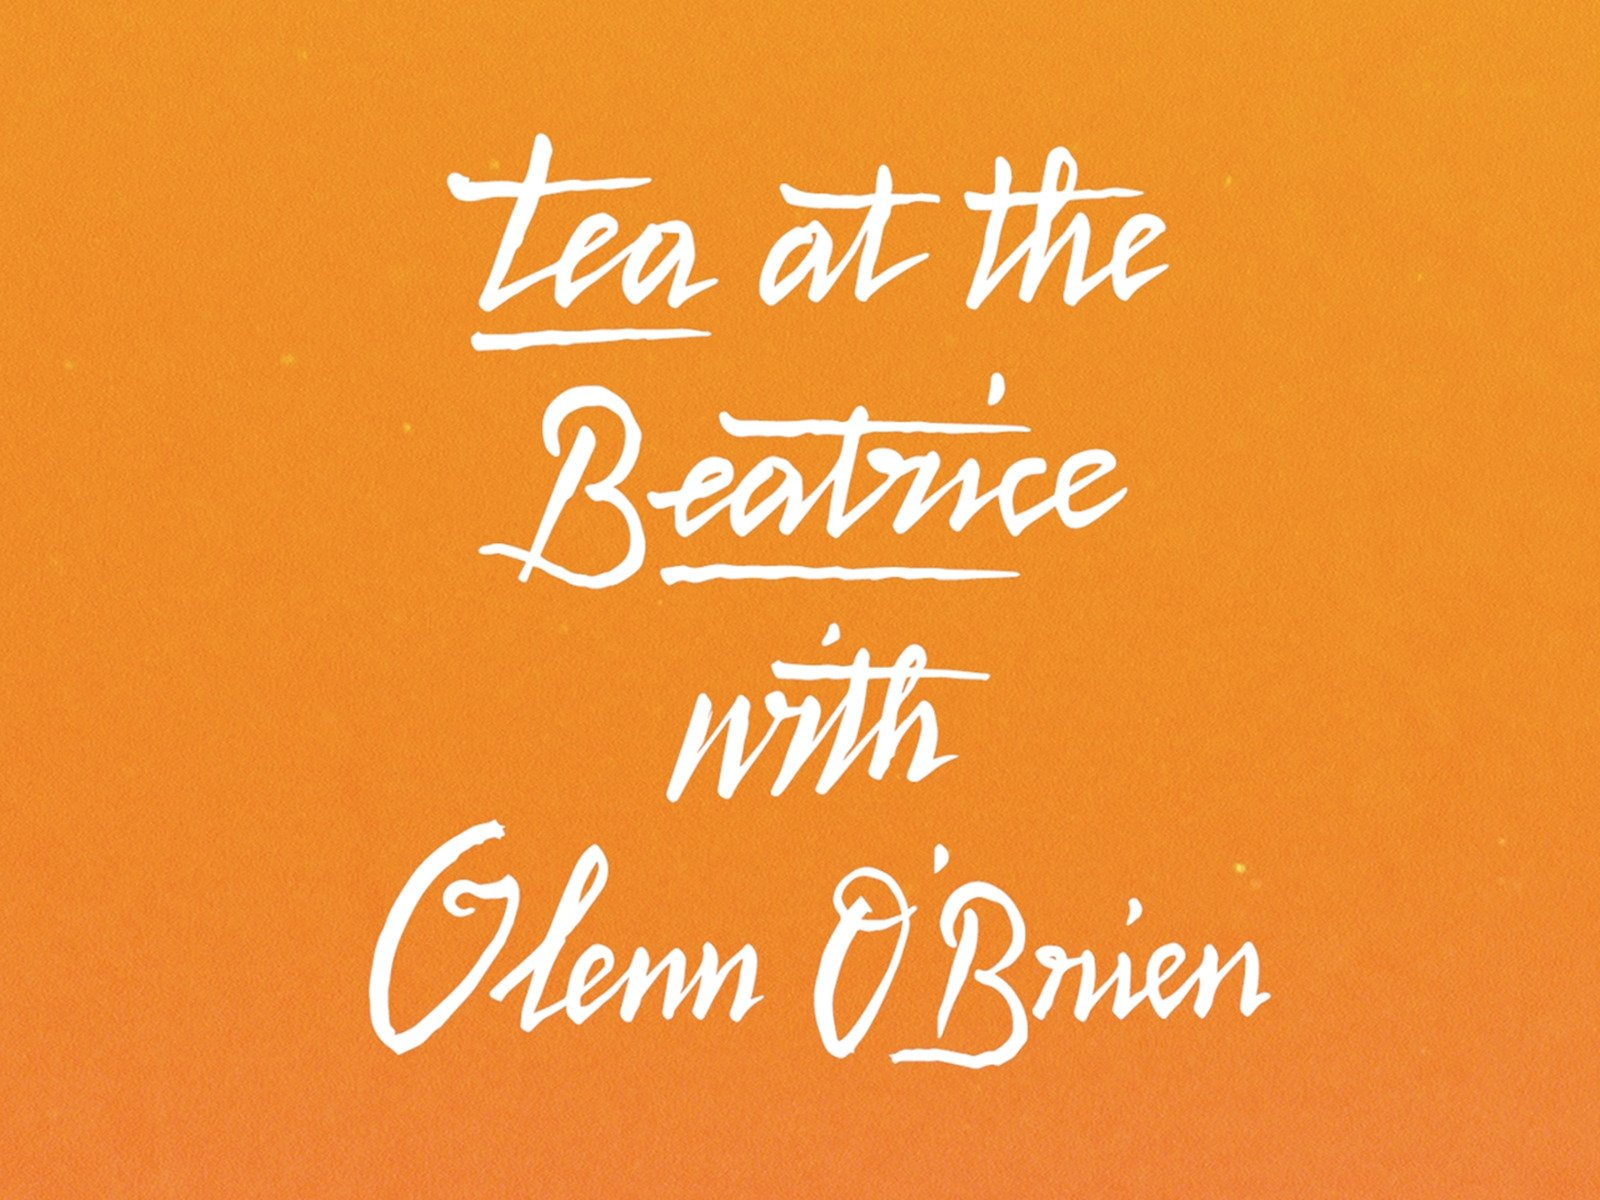 Tea At The Beatrice with Glenn O'Brien - Season 2